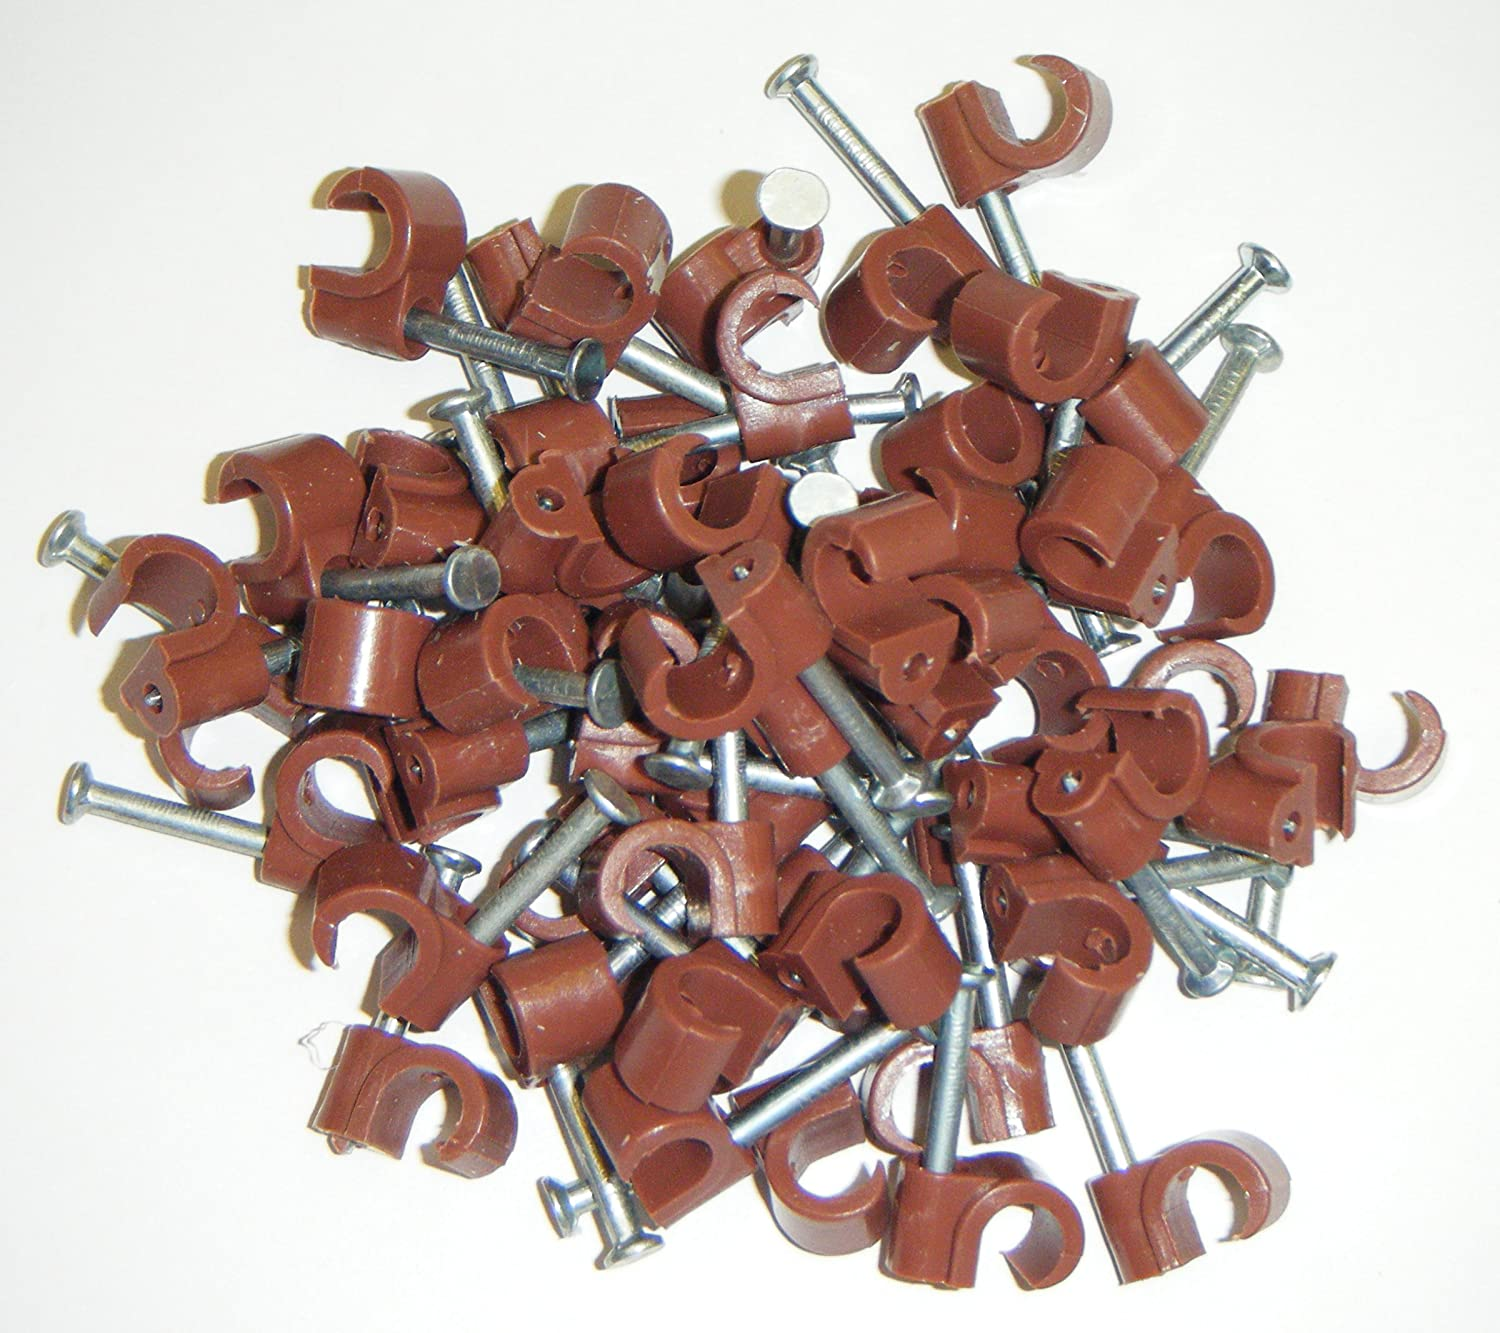 100 x BROWN 7mm ROUND WIRE CABLE CLIPS COAXIAL AERIAL COAX SATELLITE TV